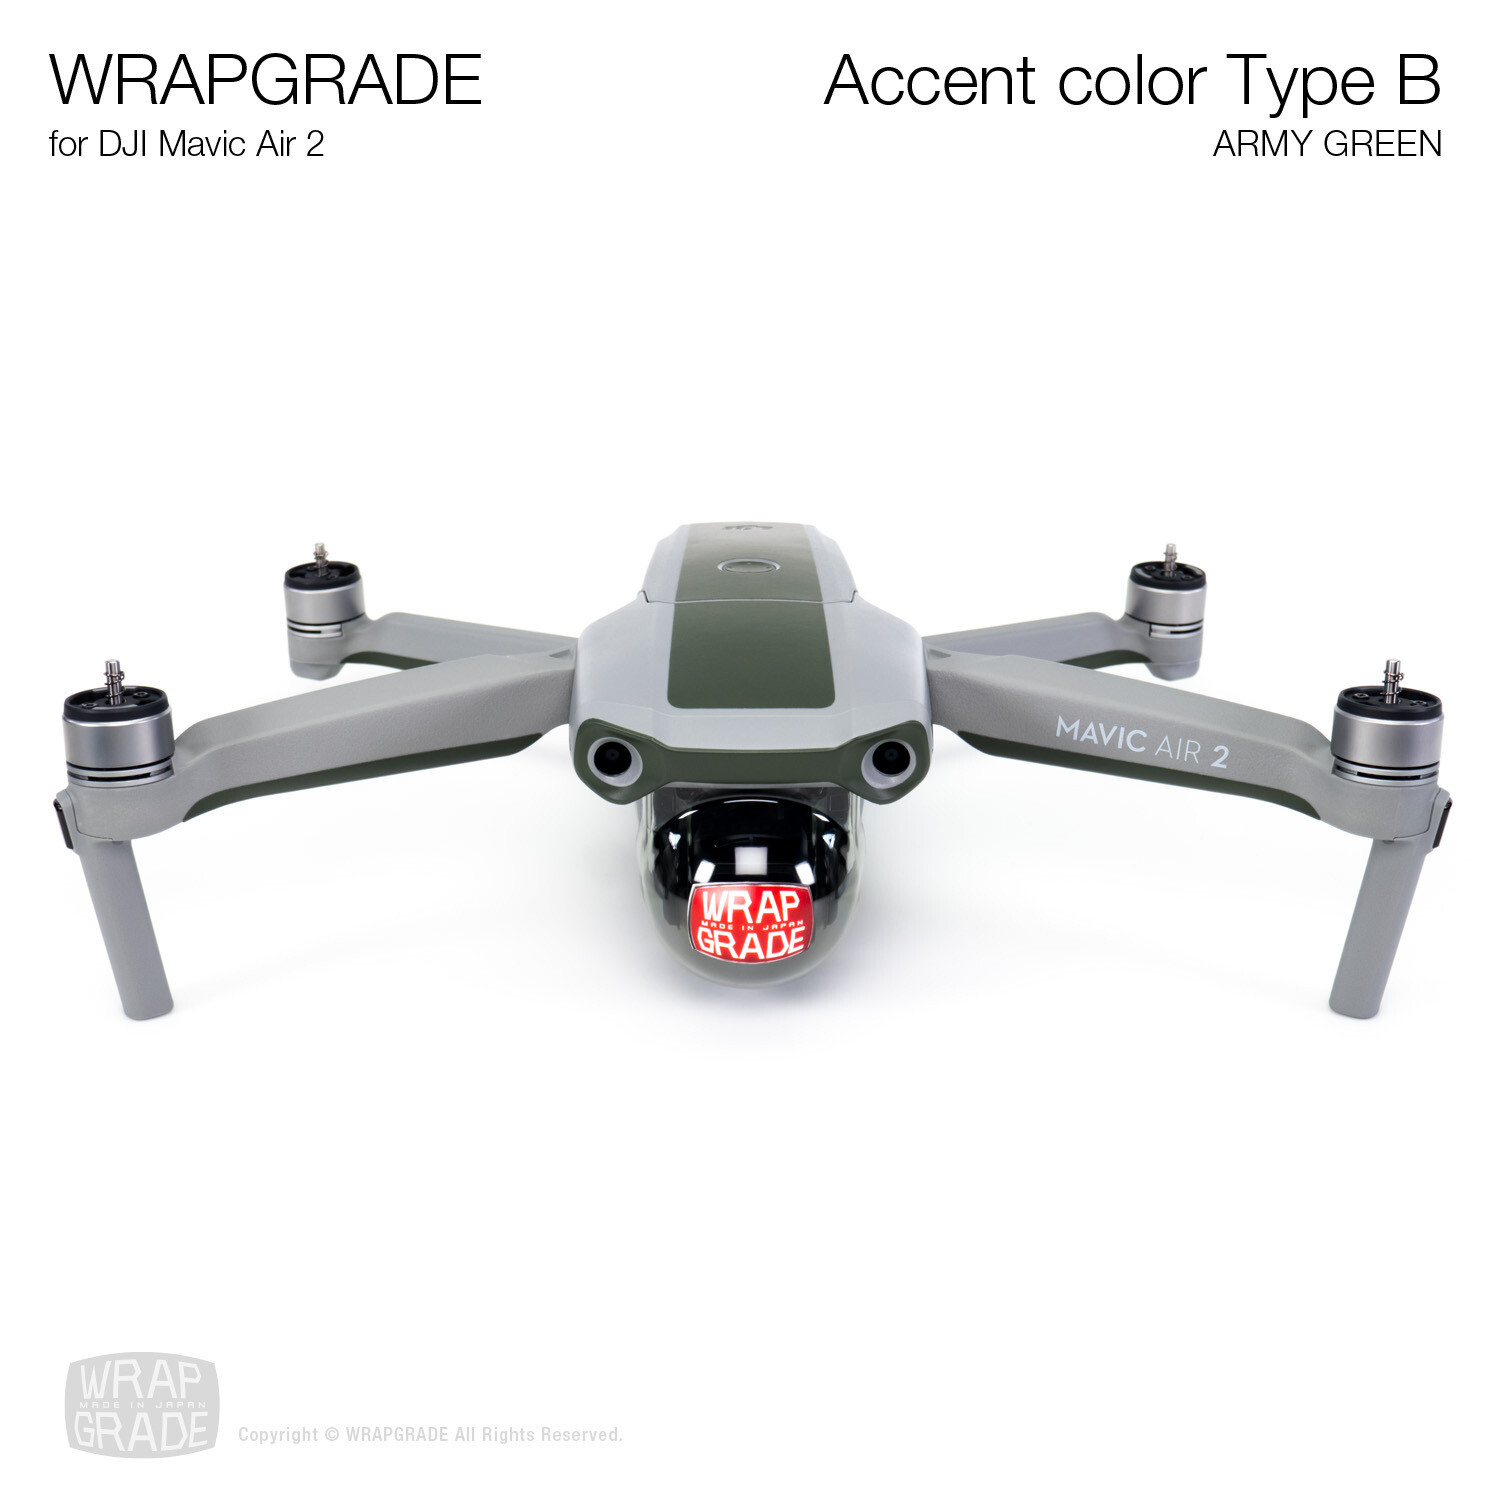 Wrapgrade for DJI Mavic Air 2 | Accent Color B (ARMY GREEN)